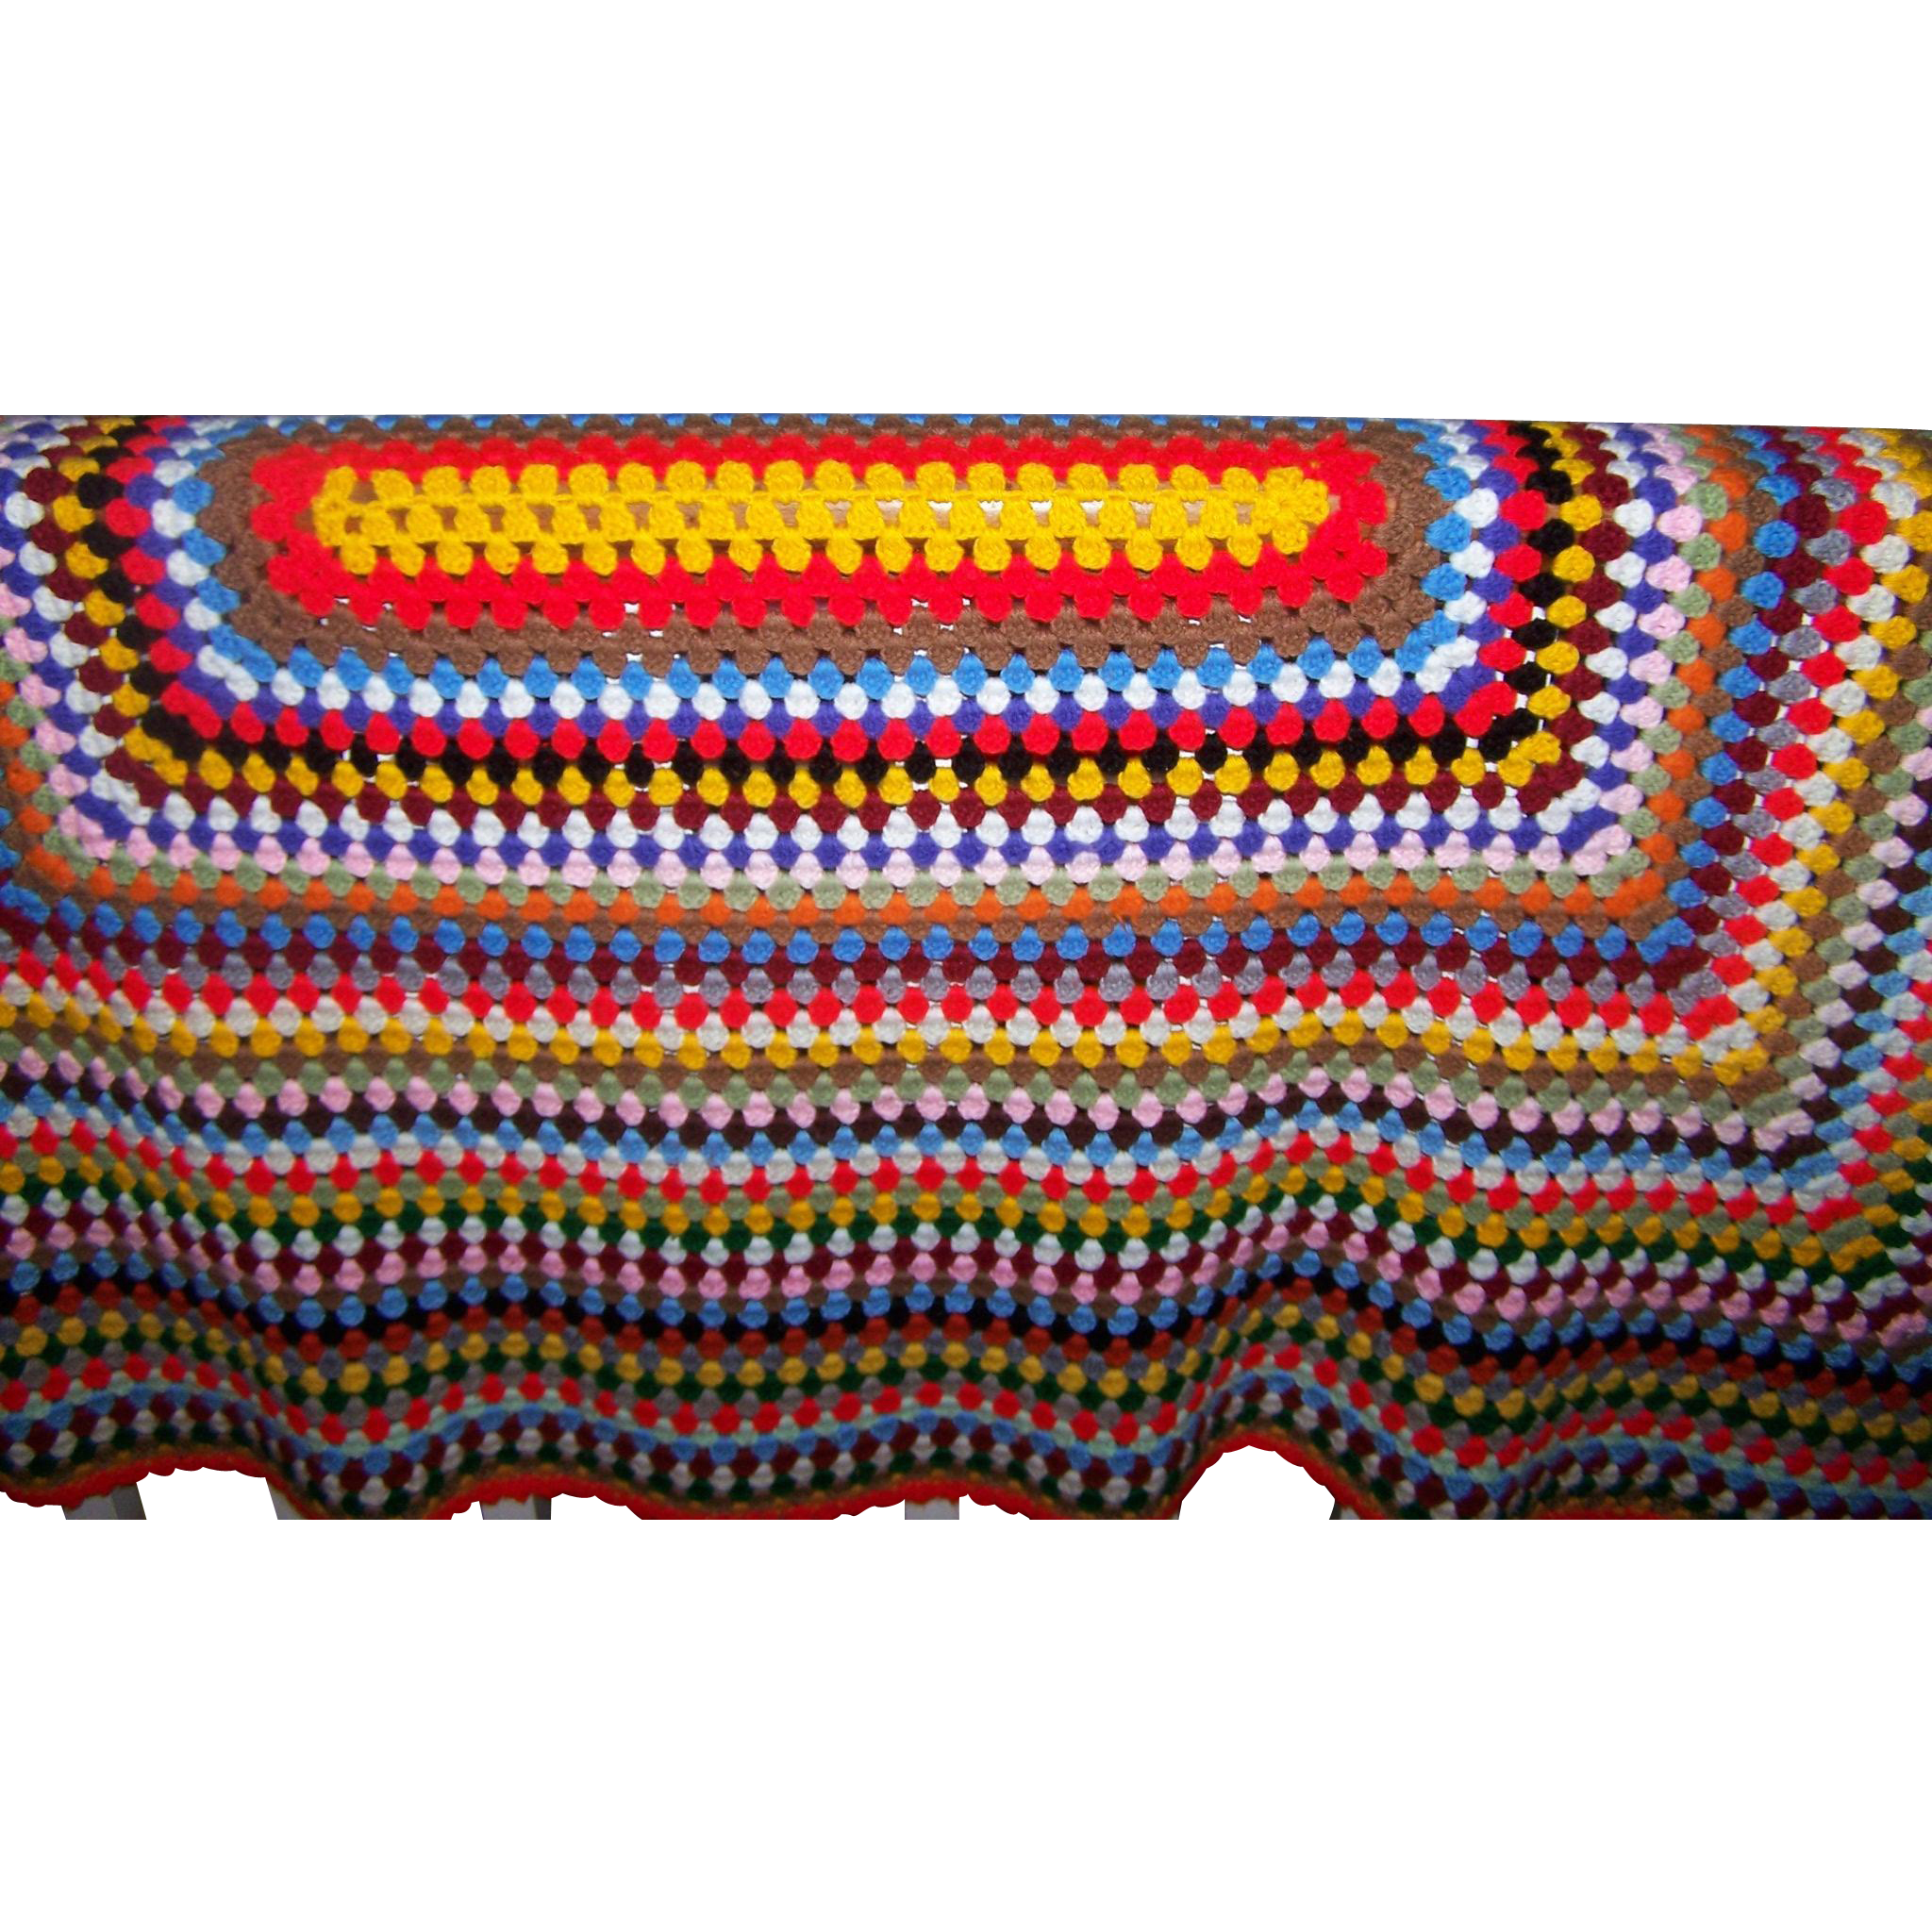 Crazy Colorful Bight and Cheerful Hand Crochet Vintage Blanket Spread